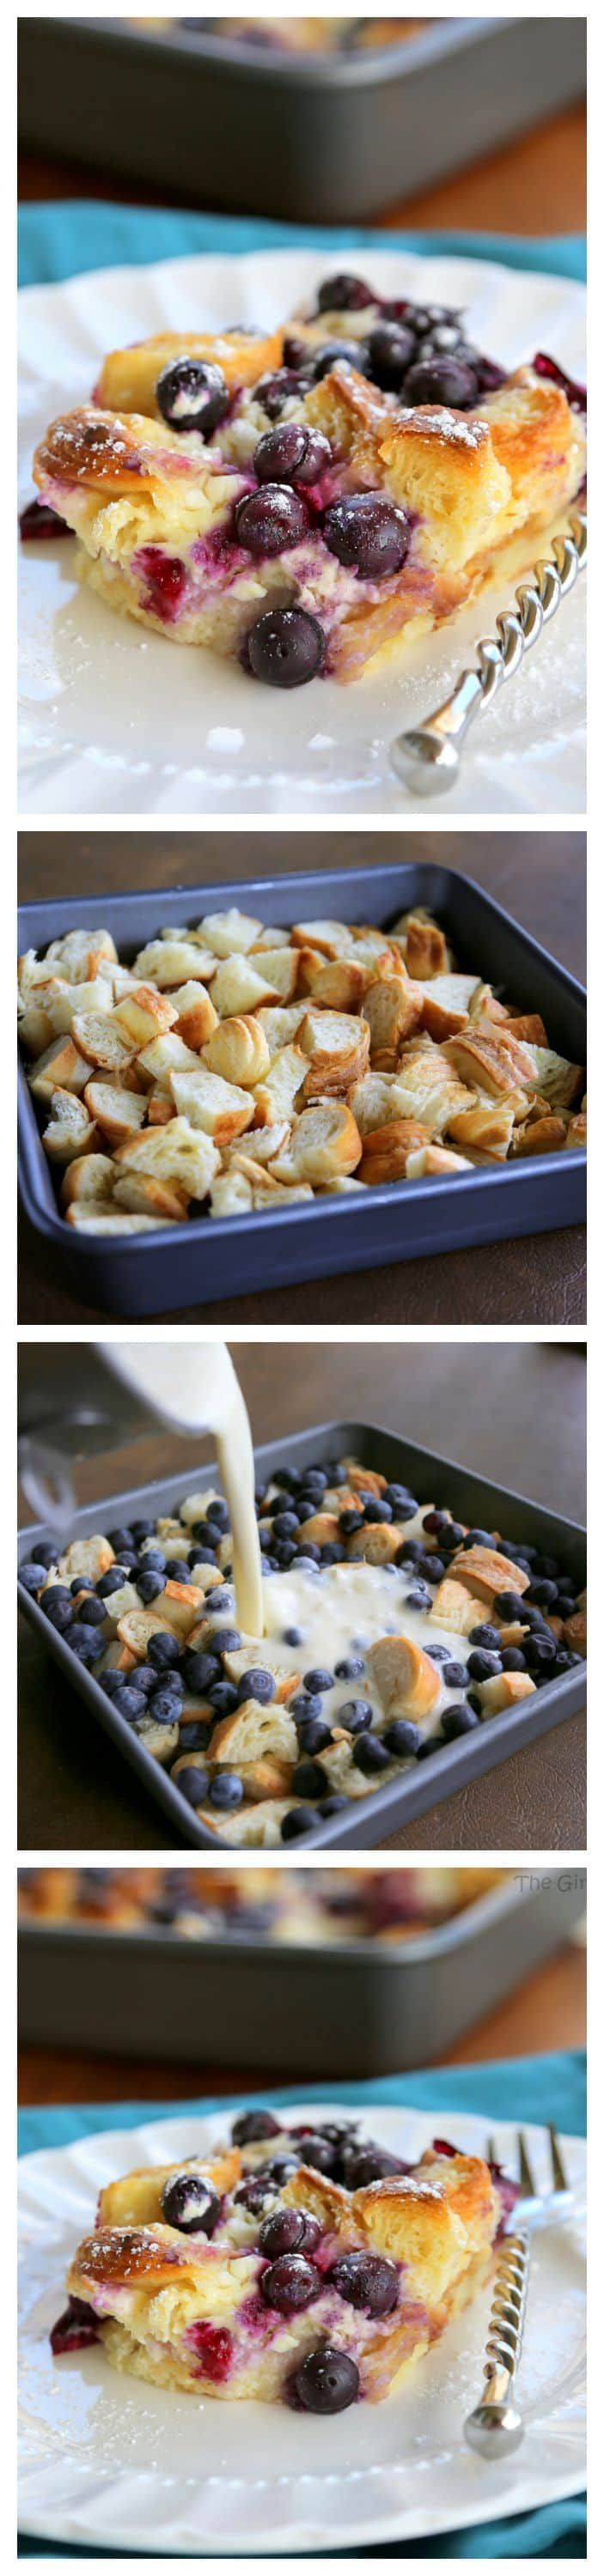 Blueberry Croissant Puff - a delicious overnight breakfast dish that everyone will love. the-girl-who-ate-everything.com